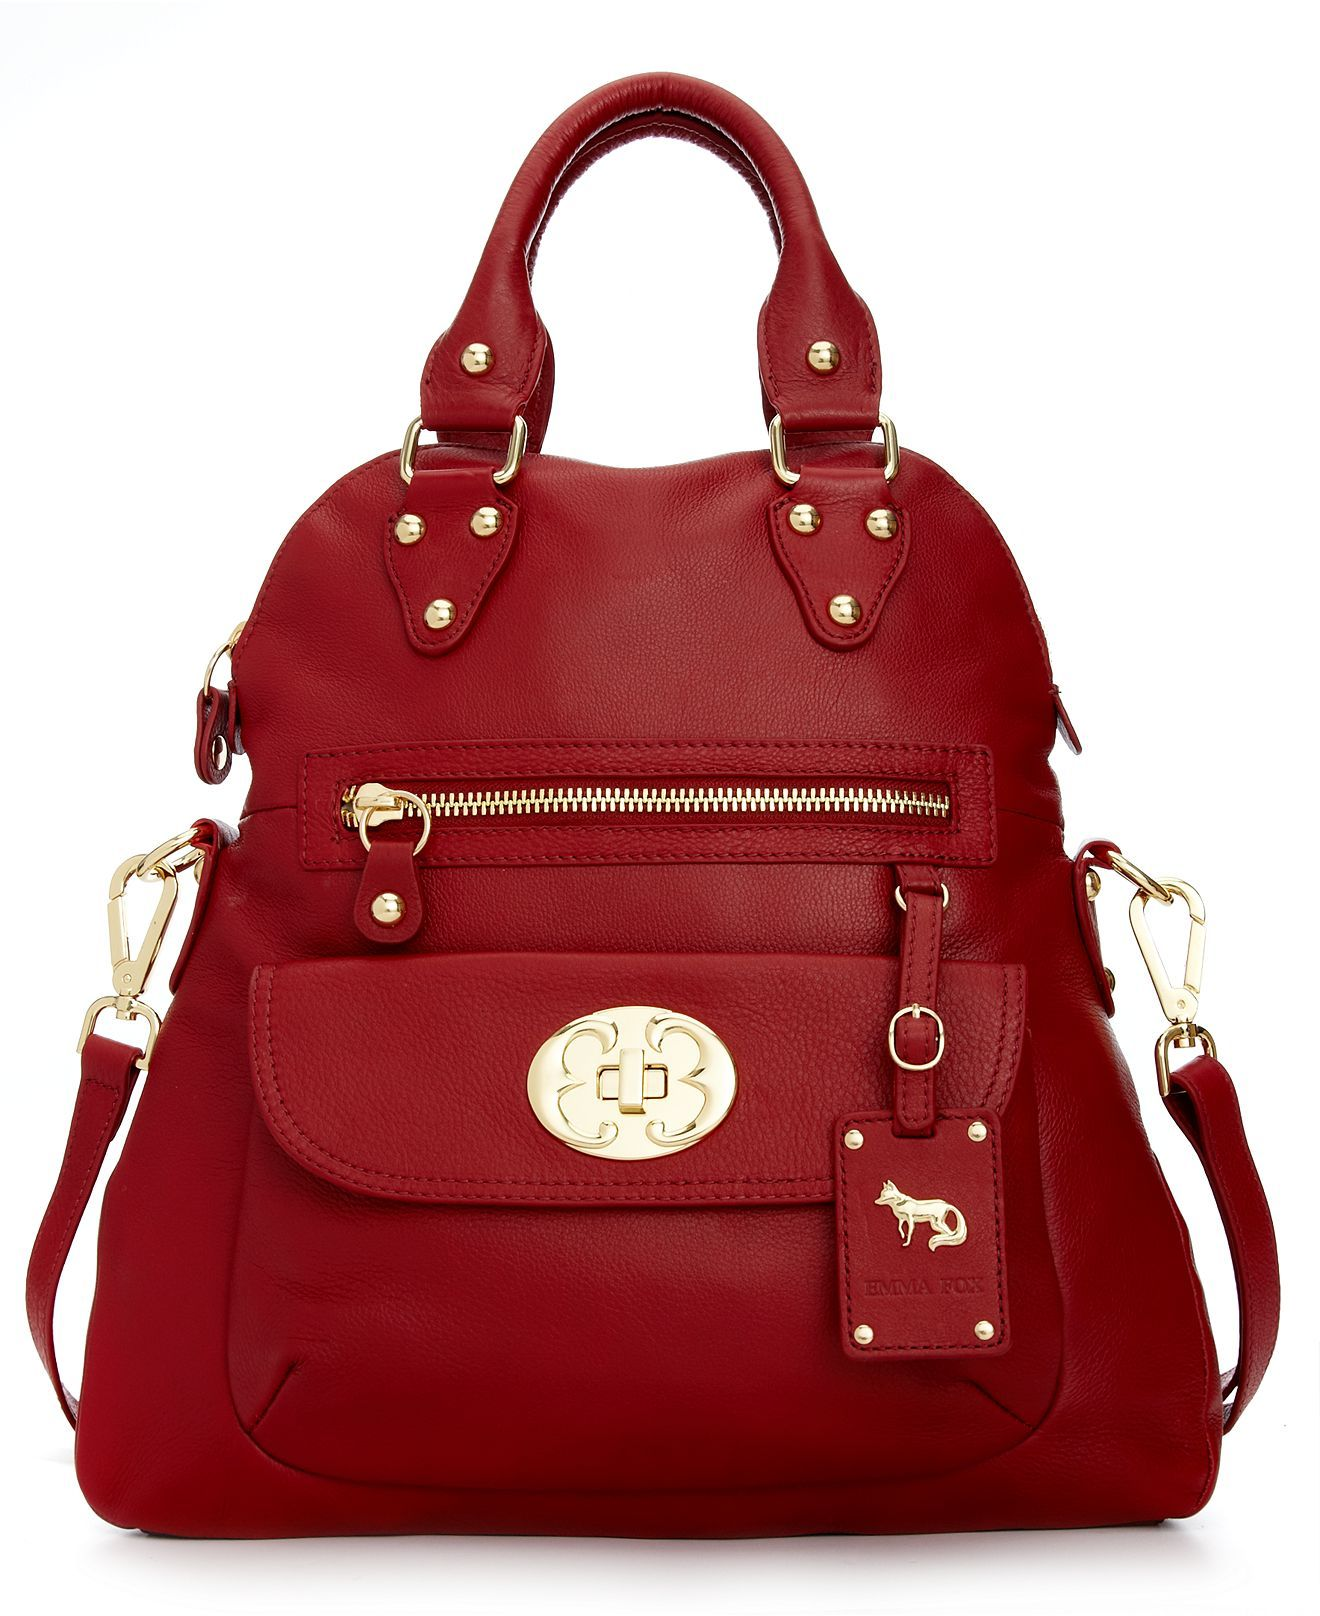 Emma Fox Handbag, Classics Large Foldover Tote - Emma Fox - Handbags    Accessories - Macy s Bordeaux SALE  222.99 82d842b094